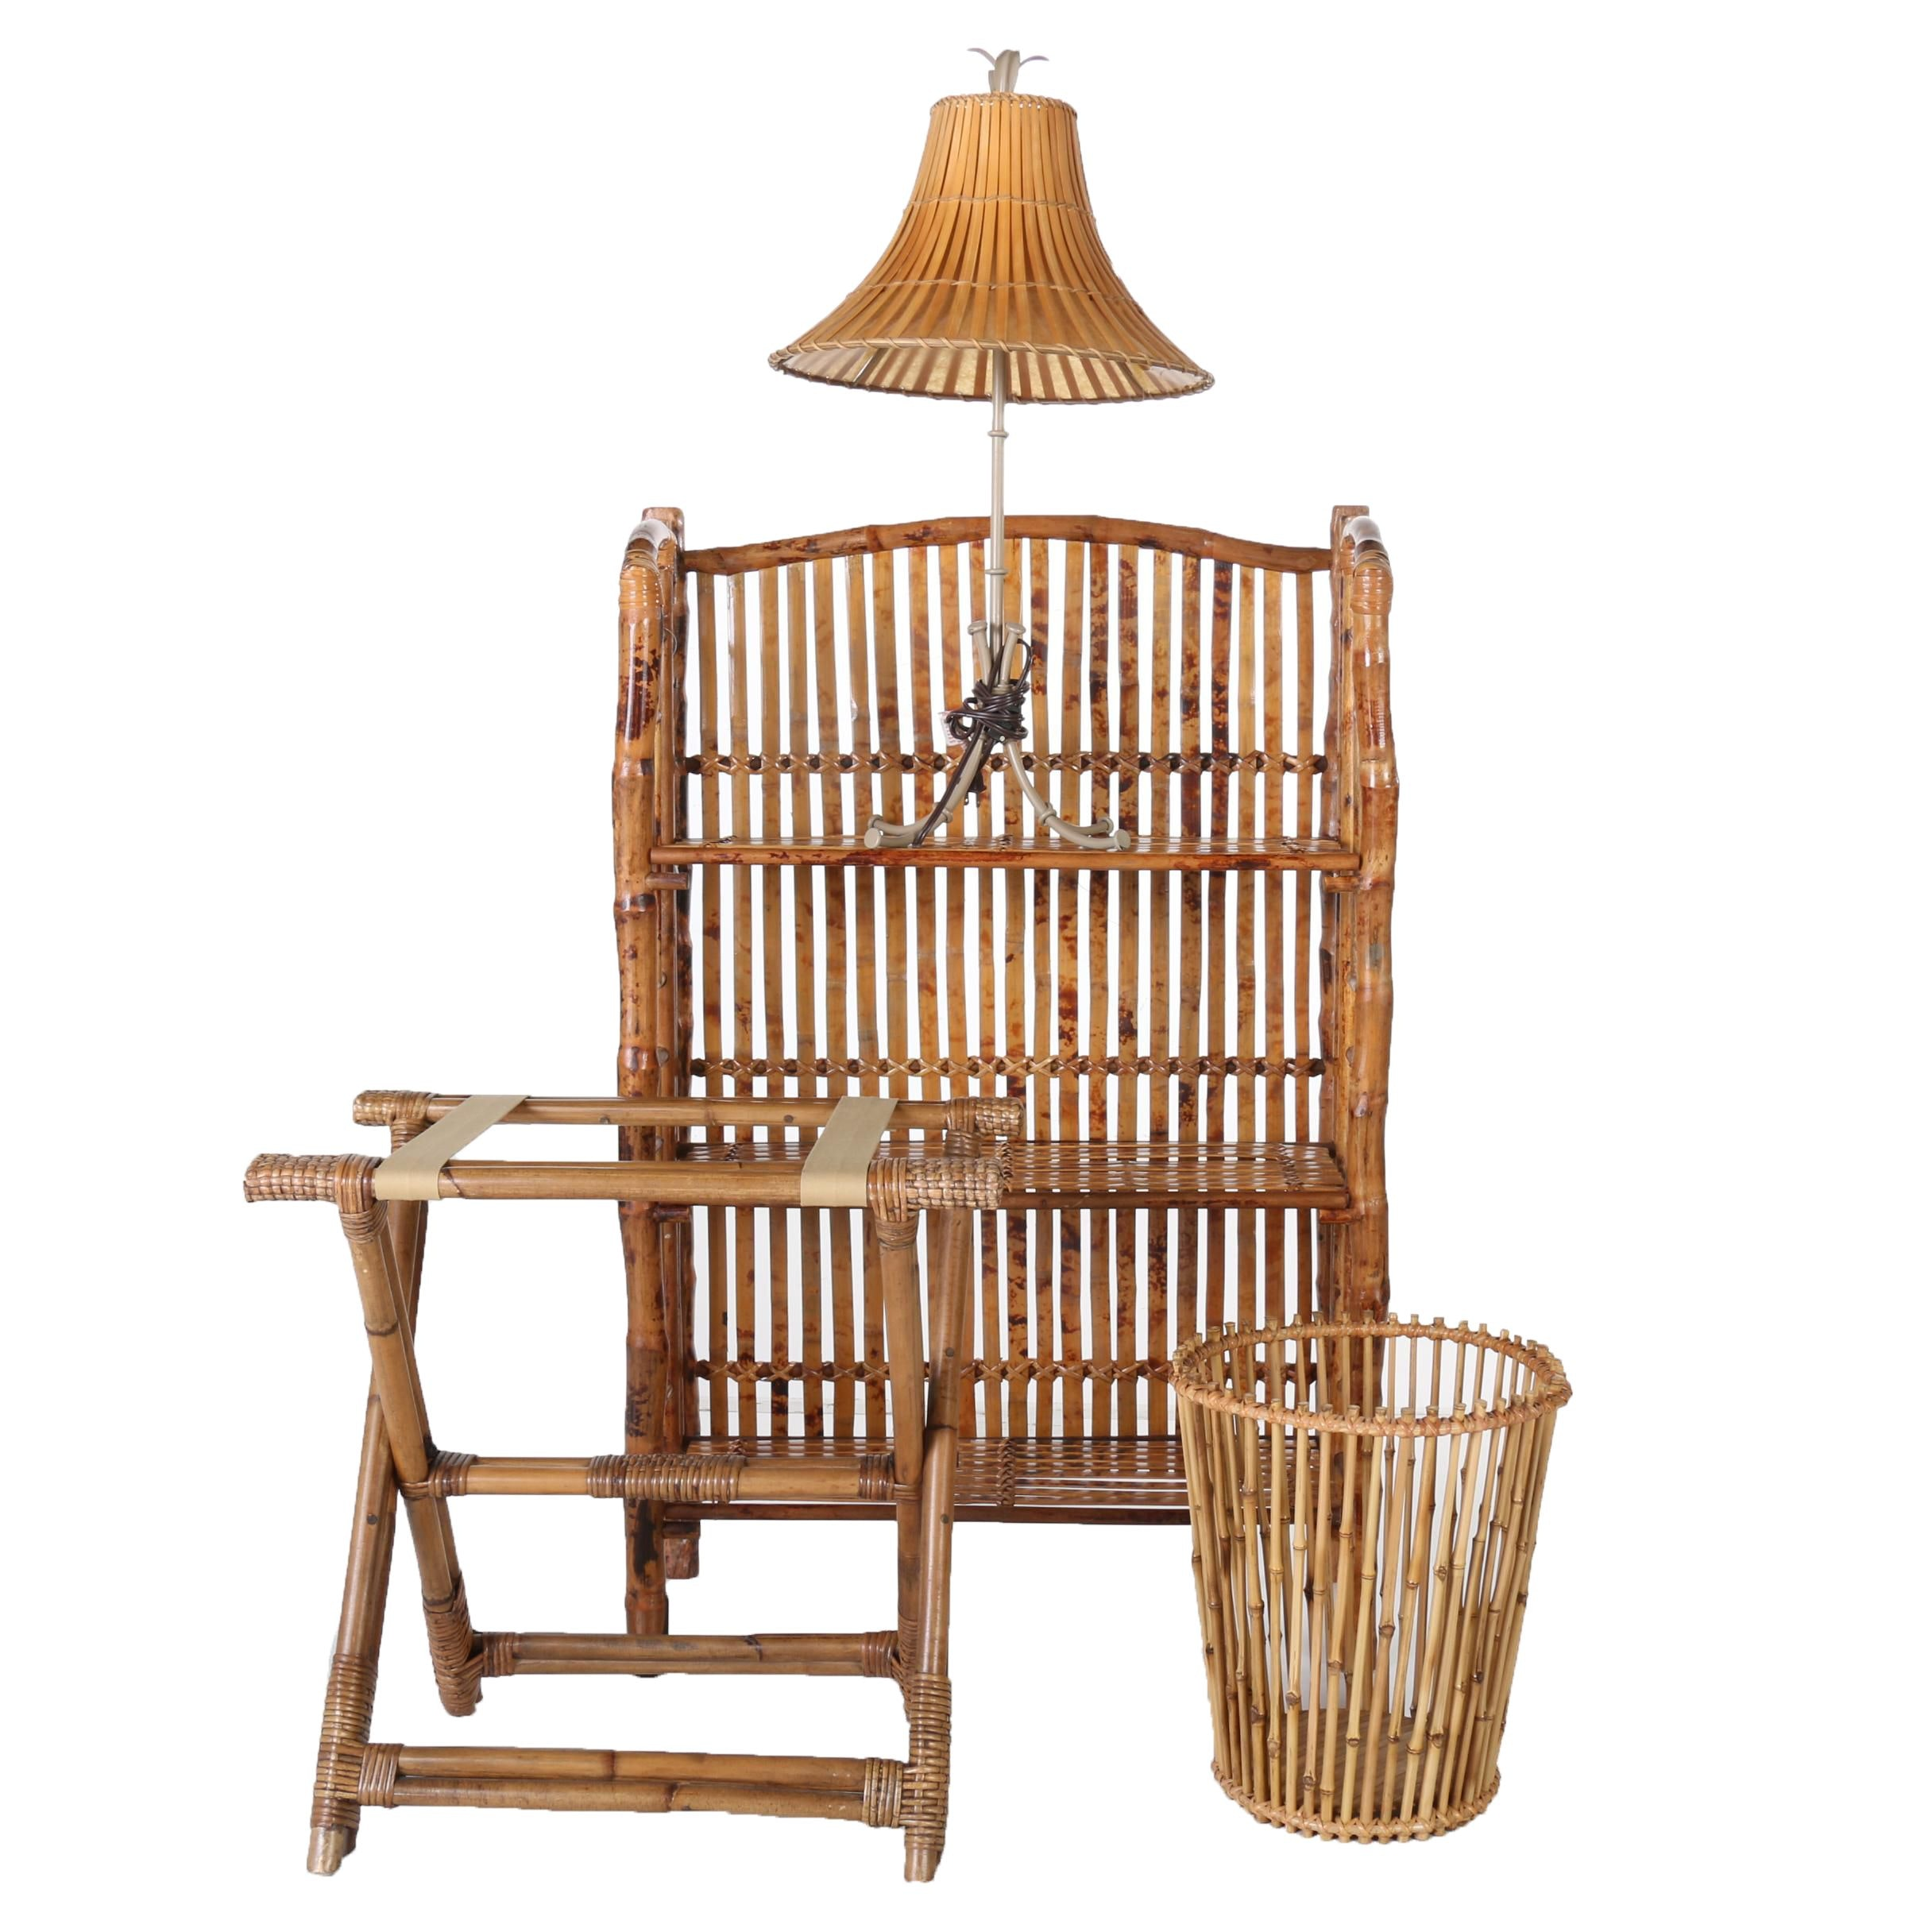 Collection of Wicker Decor